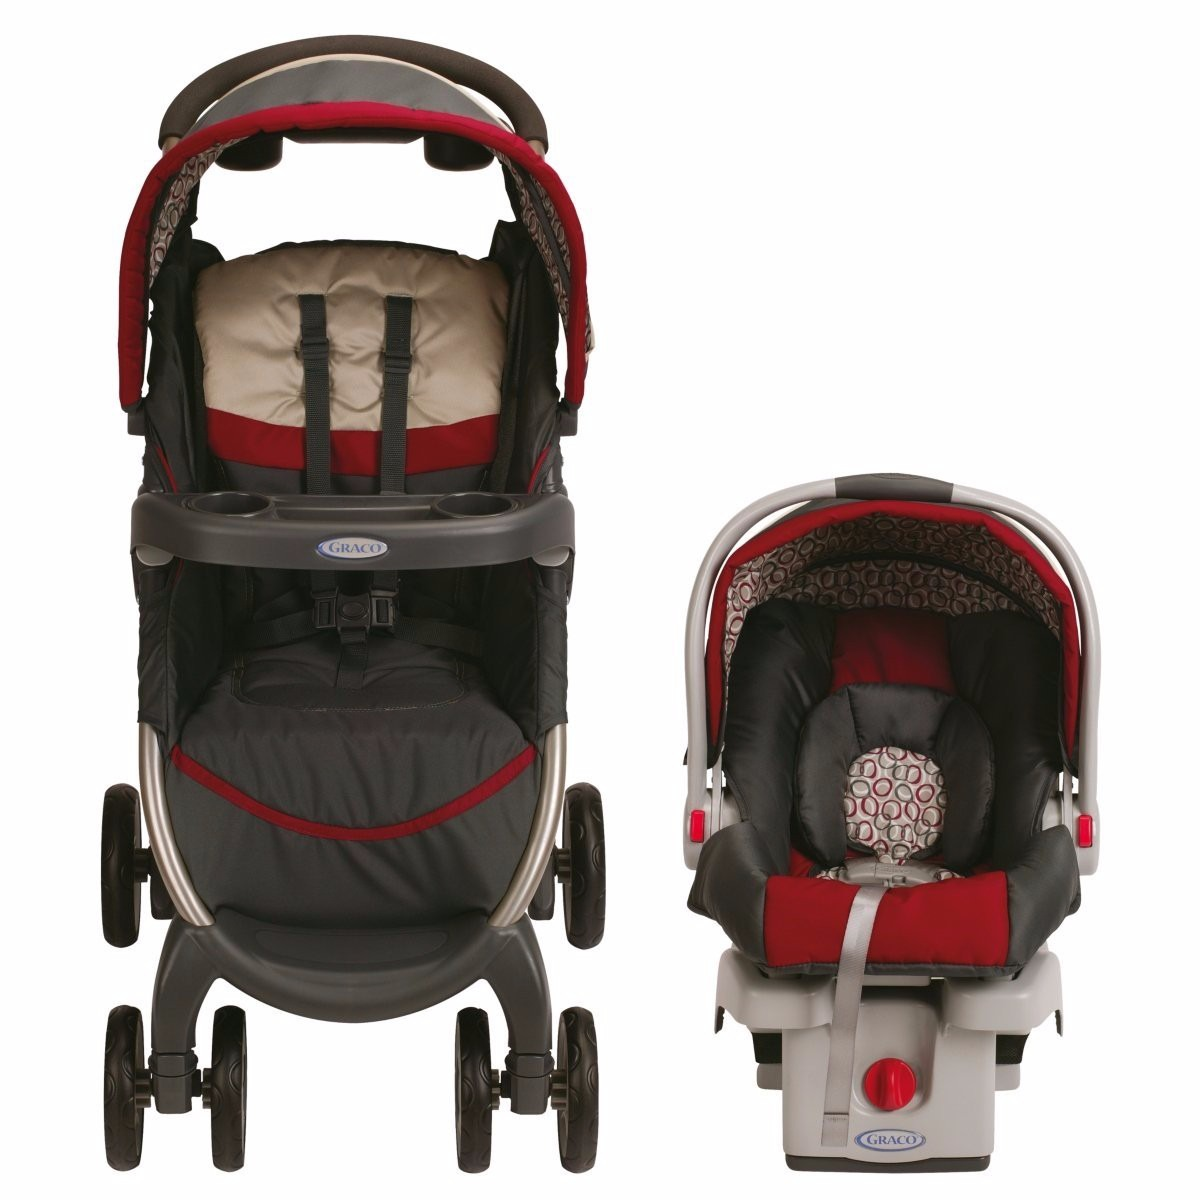 Carreola Carriola Bebe Travel System Graco Fastaction